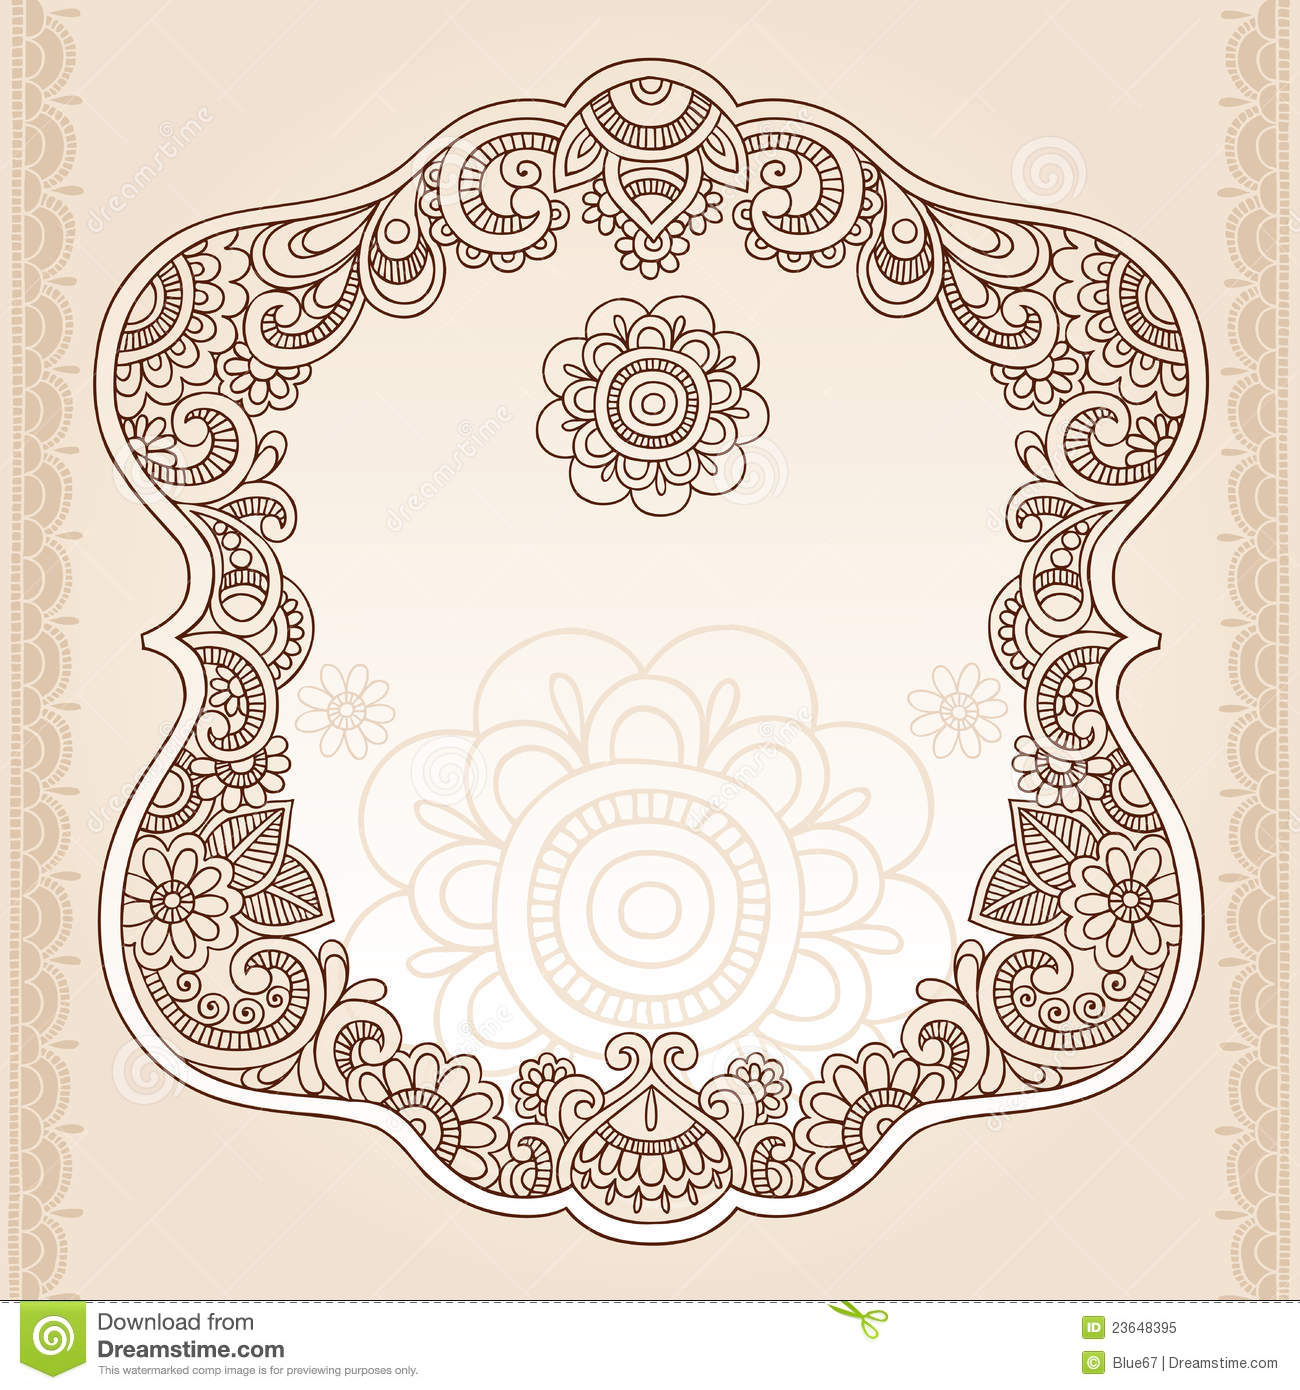 Mehndi Hand Vector Free Download : Henna tattoo flower frame doodle vector design stock